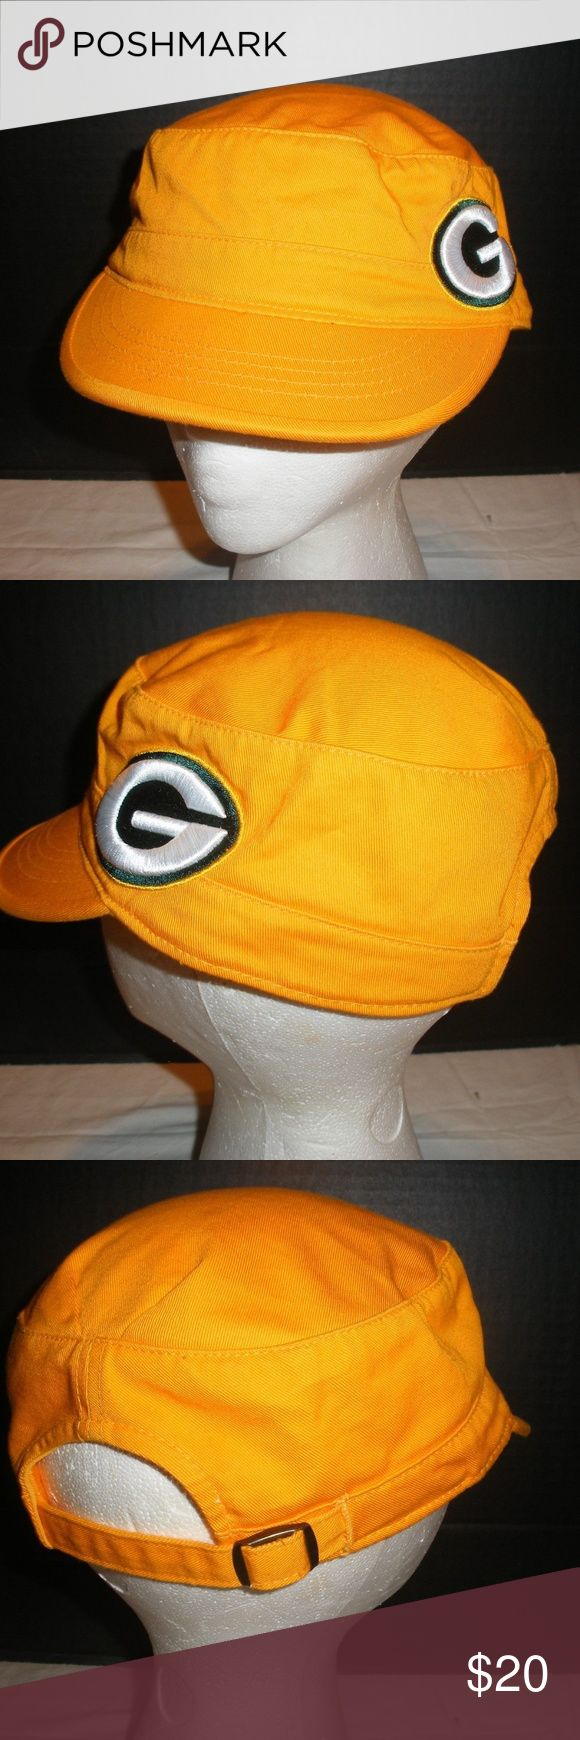 Green Bay Packers Yellow Ladies Hat One Size Green Bay Packers Yellow Ladies Hat One Size Official NFL Merchandise.Hat is in excellent used condition and ready for a new home. NFL Merchandise Accessories Hats